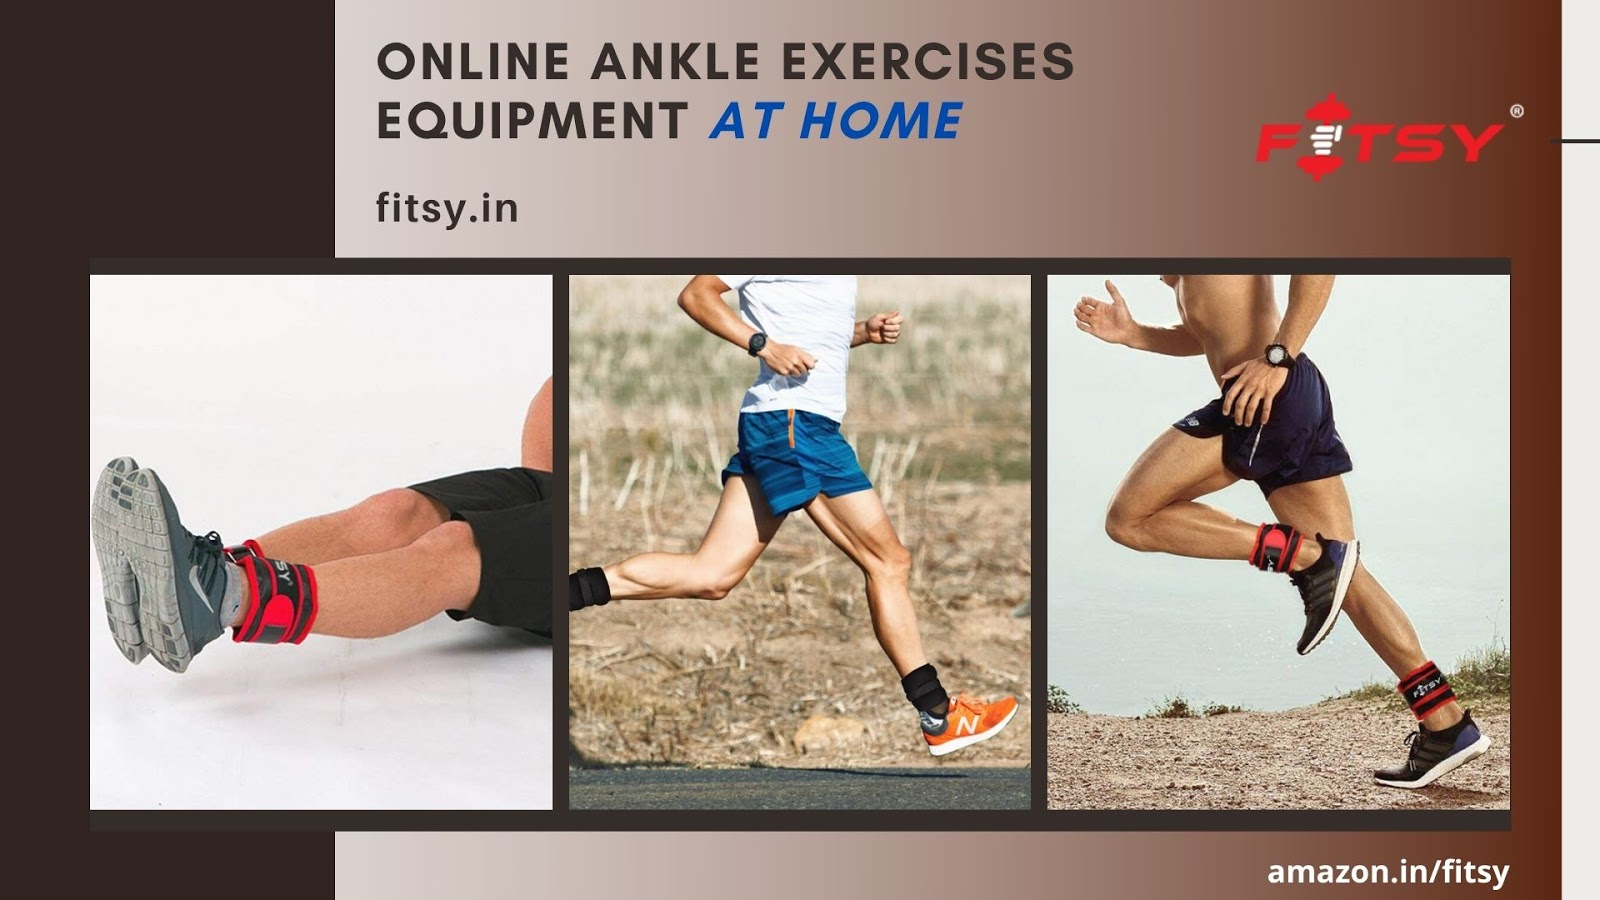 Purchase Online Ankle Exercises Equipment for Strength Training at Home